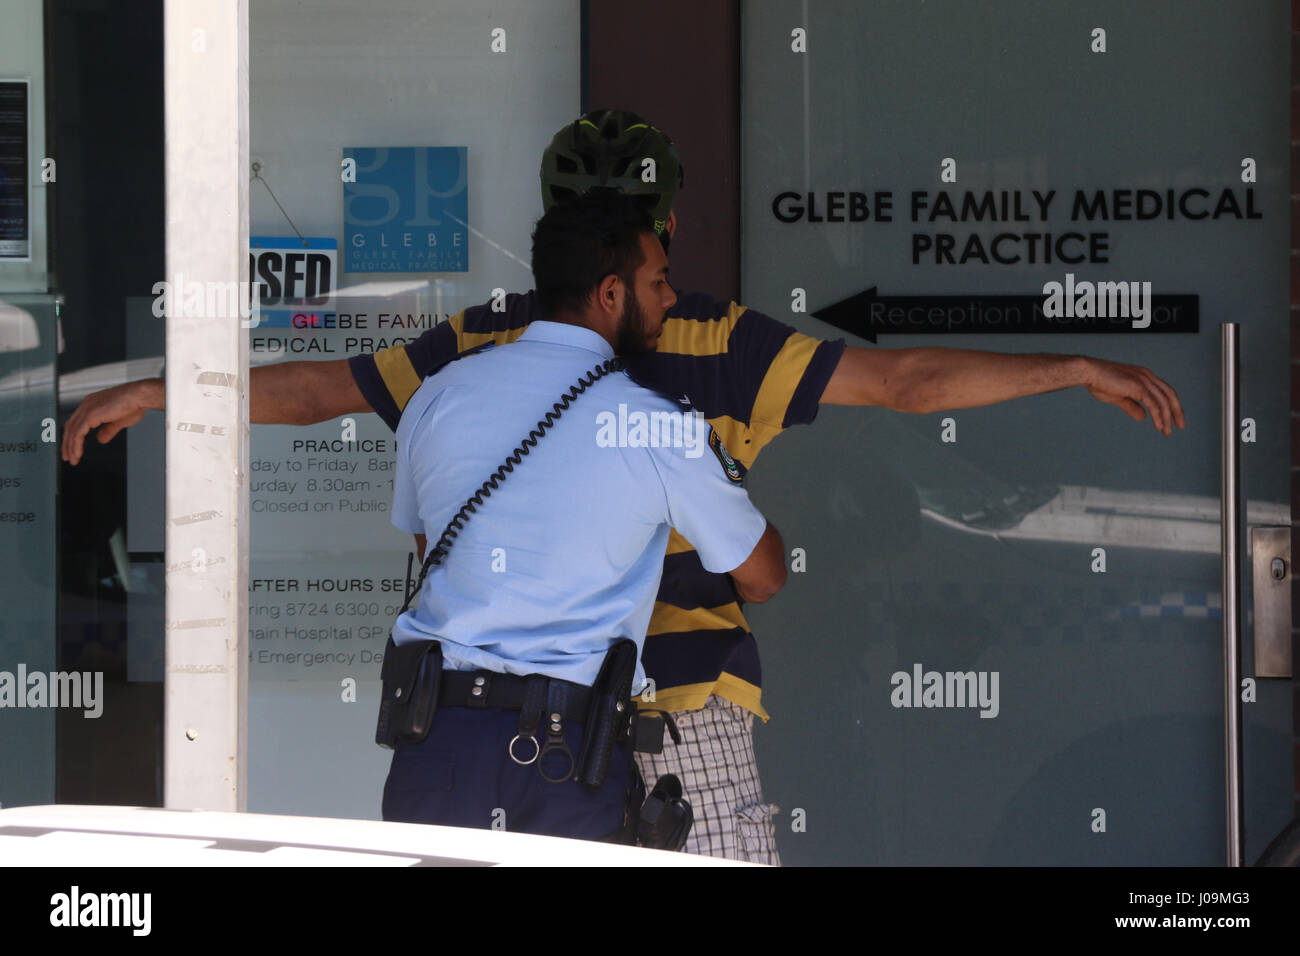 Police stop and search a cyclist on Glebe Point Road, Glebe, inner-west Sydney, Australia. - Stock Image